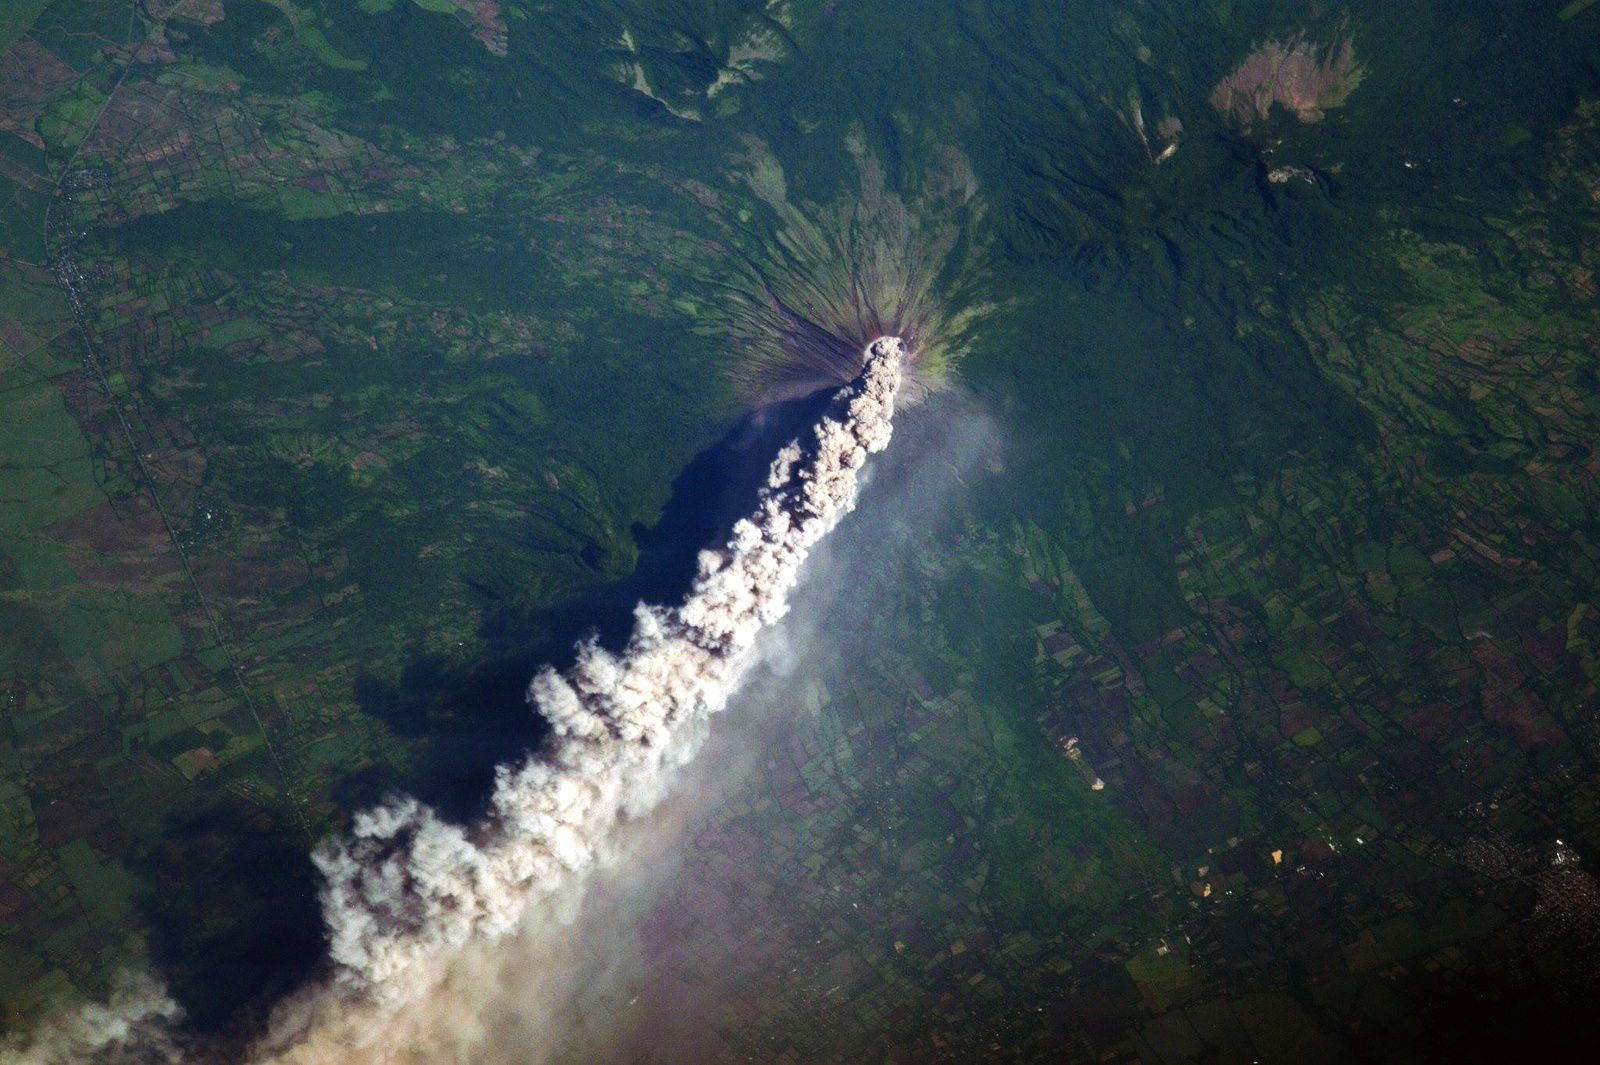 The ashes plume of the San Cristobal from 18.08.2017 - photo by Sergey Ryazansky, Russian cosmonaut on board the ISS / Nasa Johnson space center